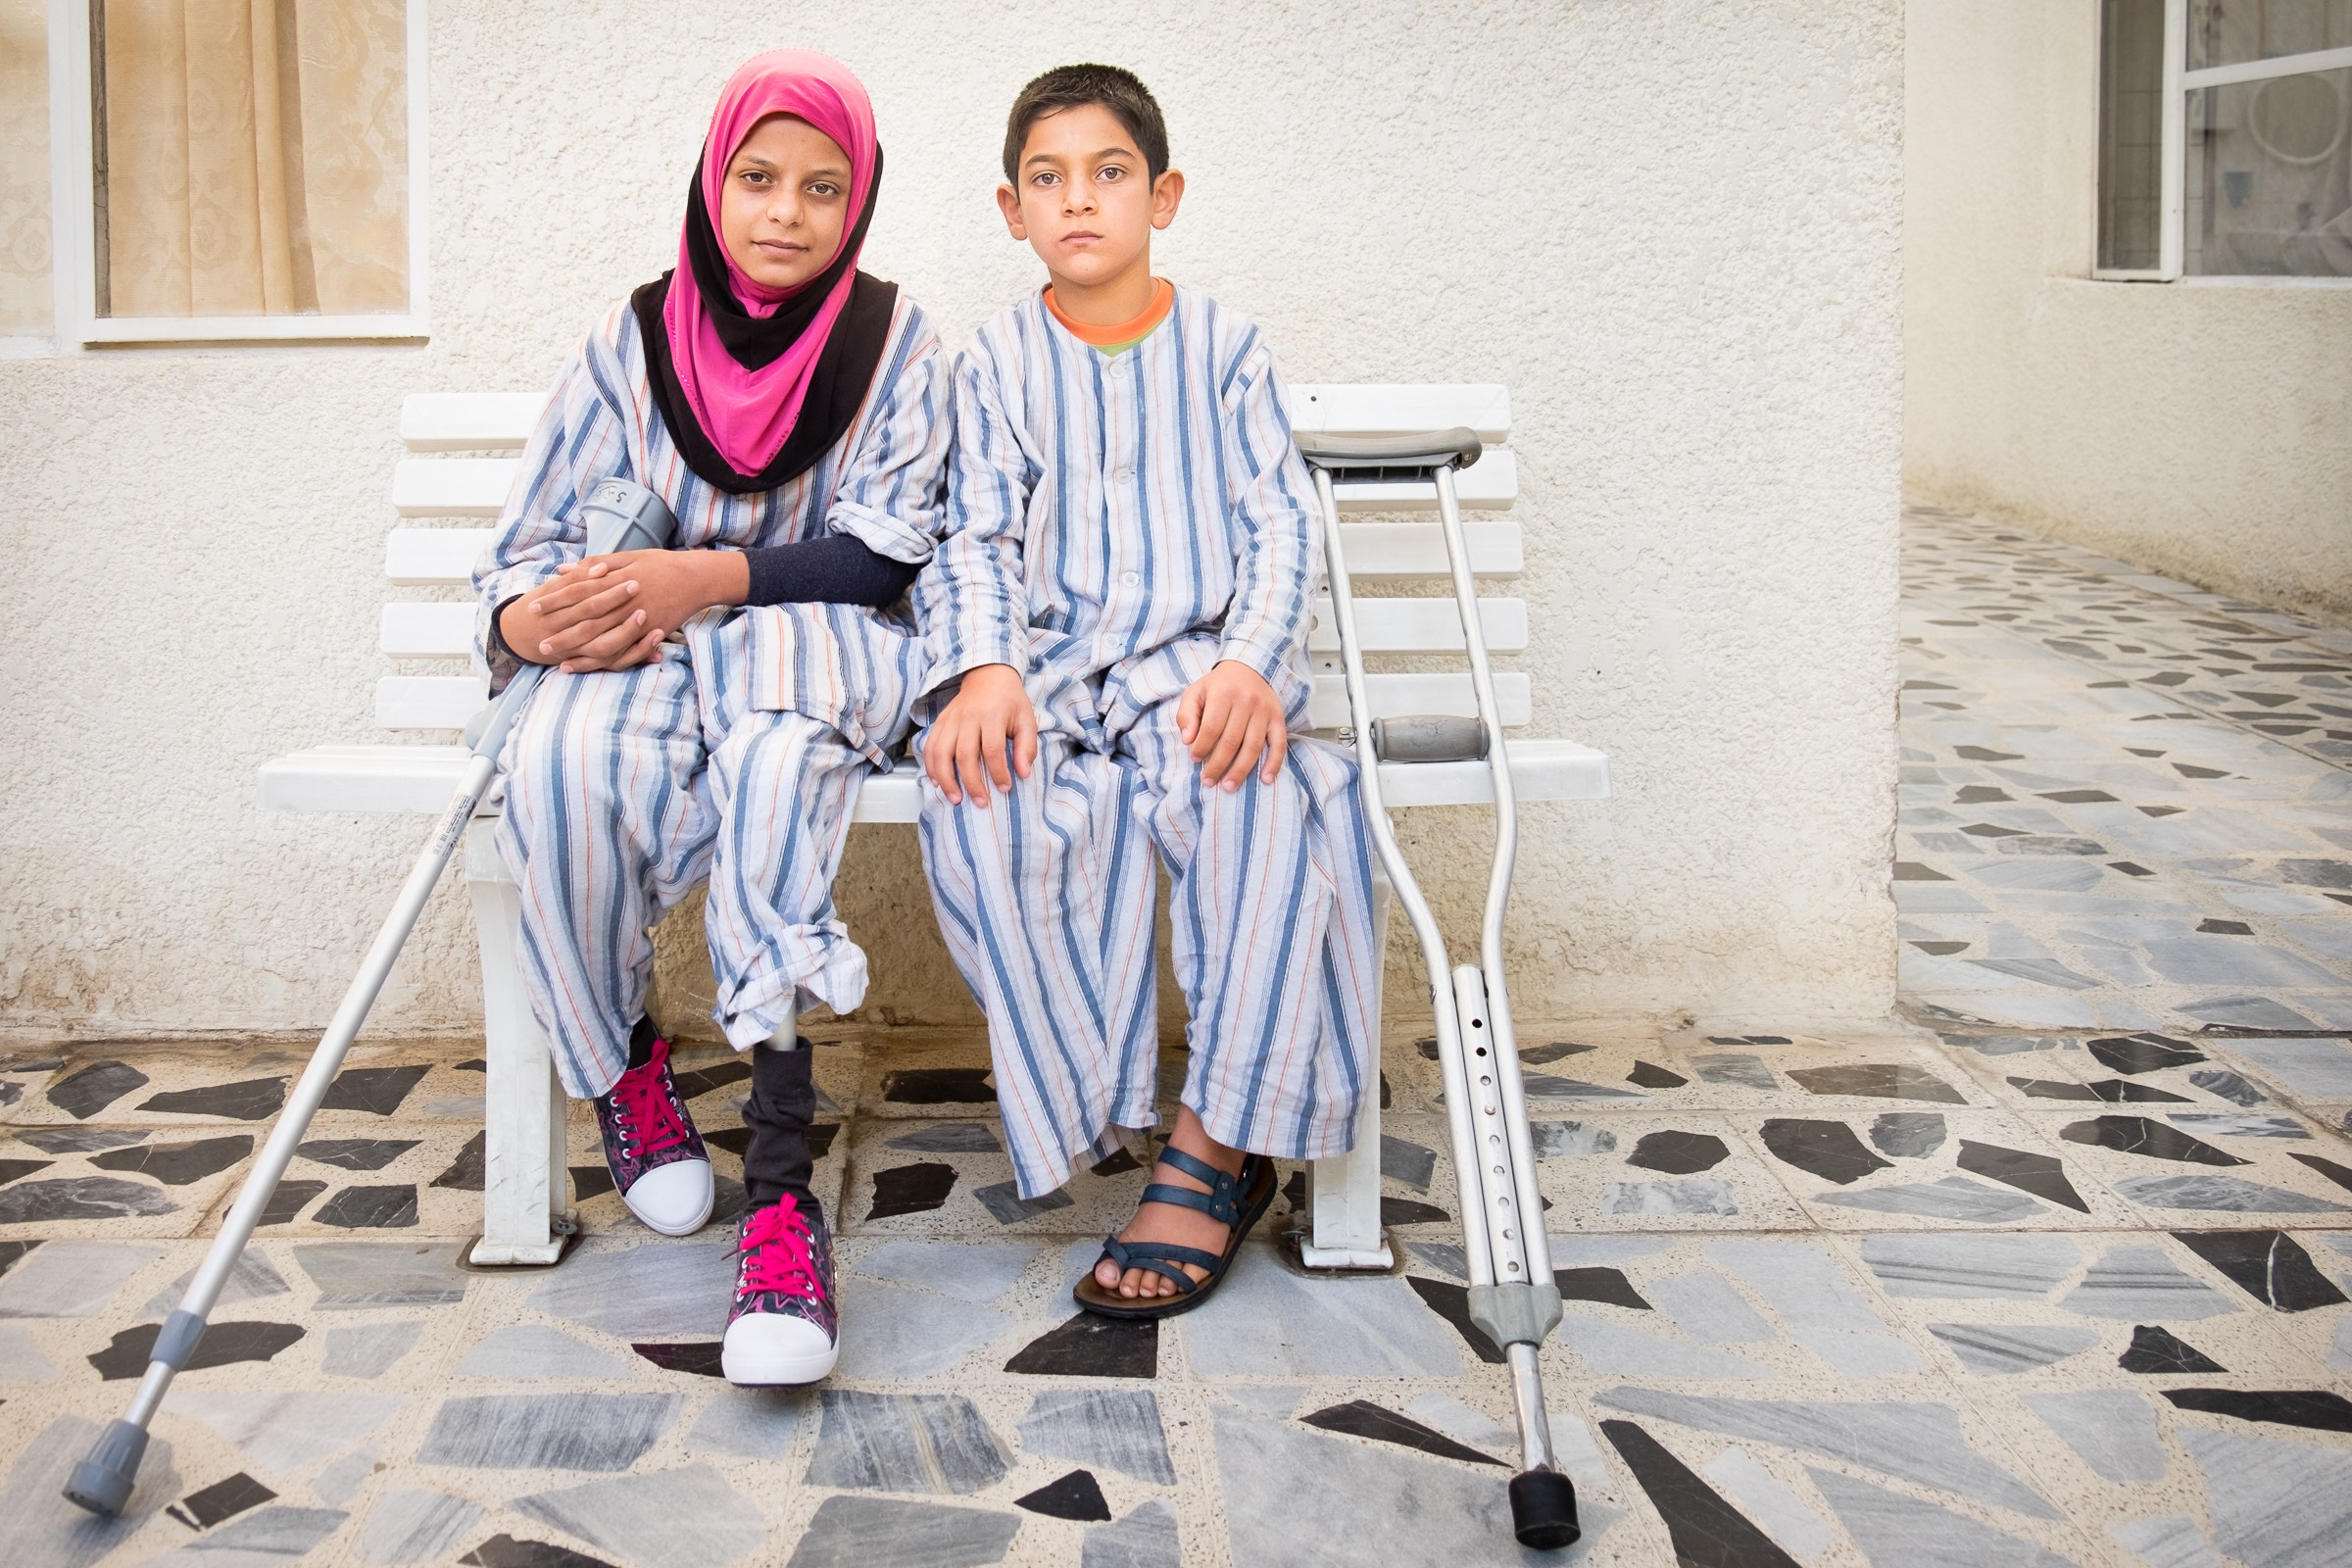 They Are Both 13 And Come From The Same City – Mosul